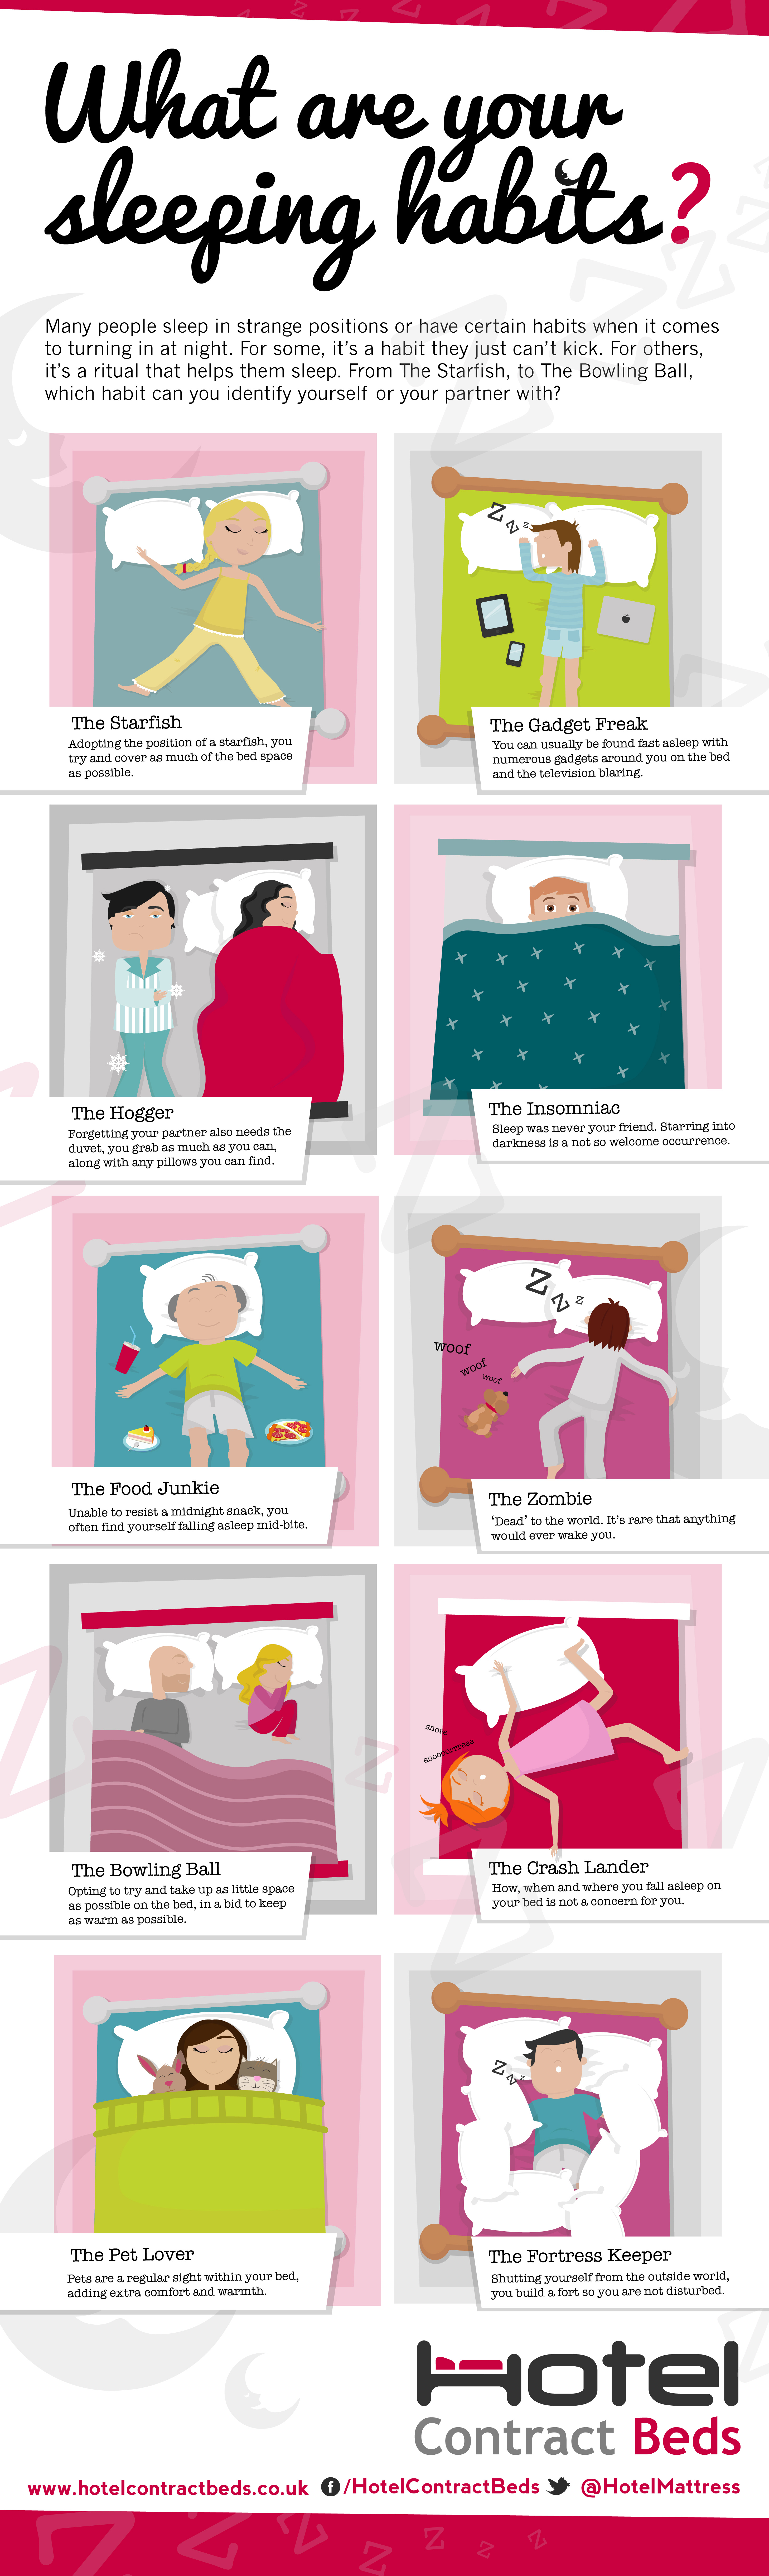 what are your sleeping habits infographic